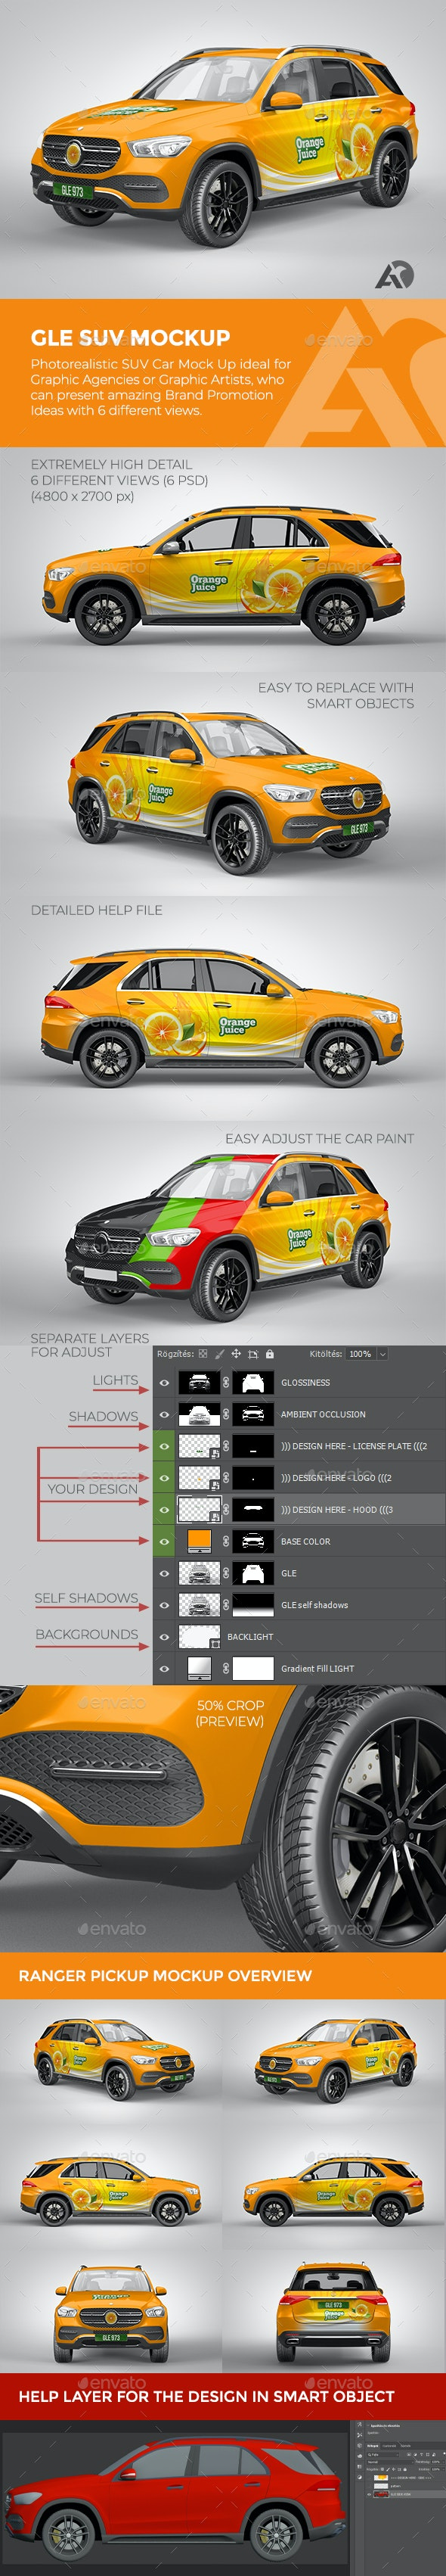 GLE SUV Mock Up for Brand Promotions - Vehicle Wraps Print